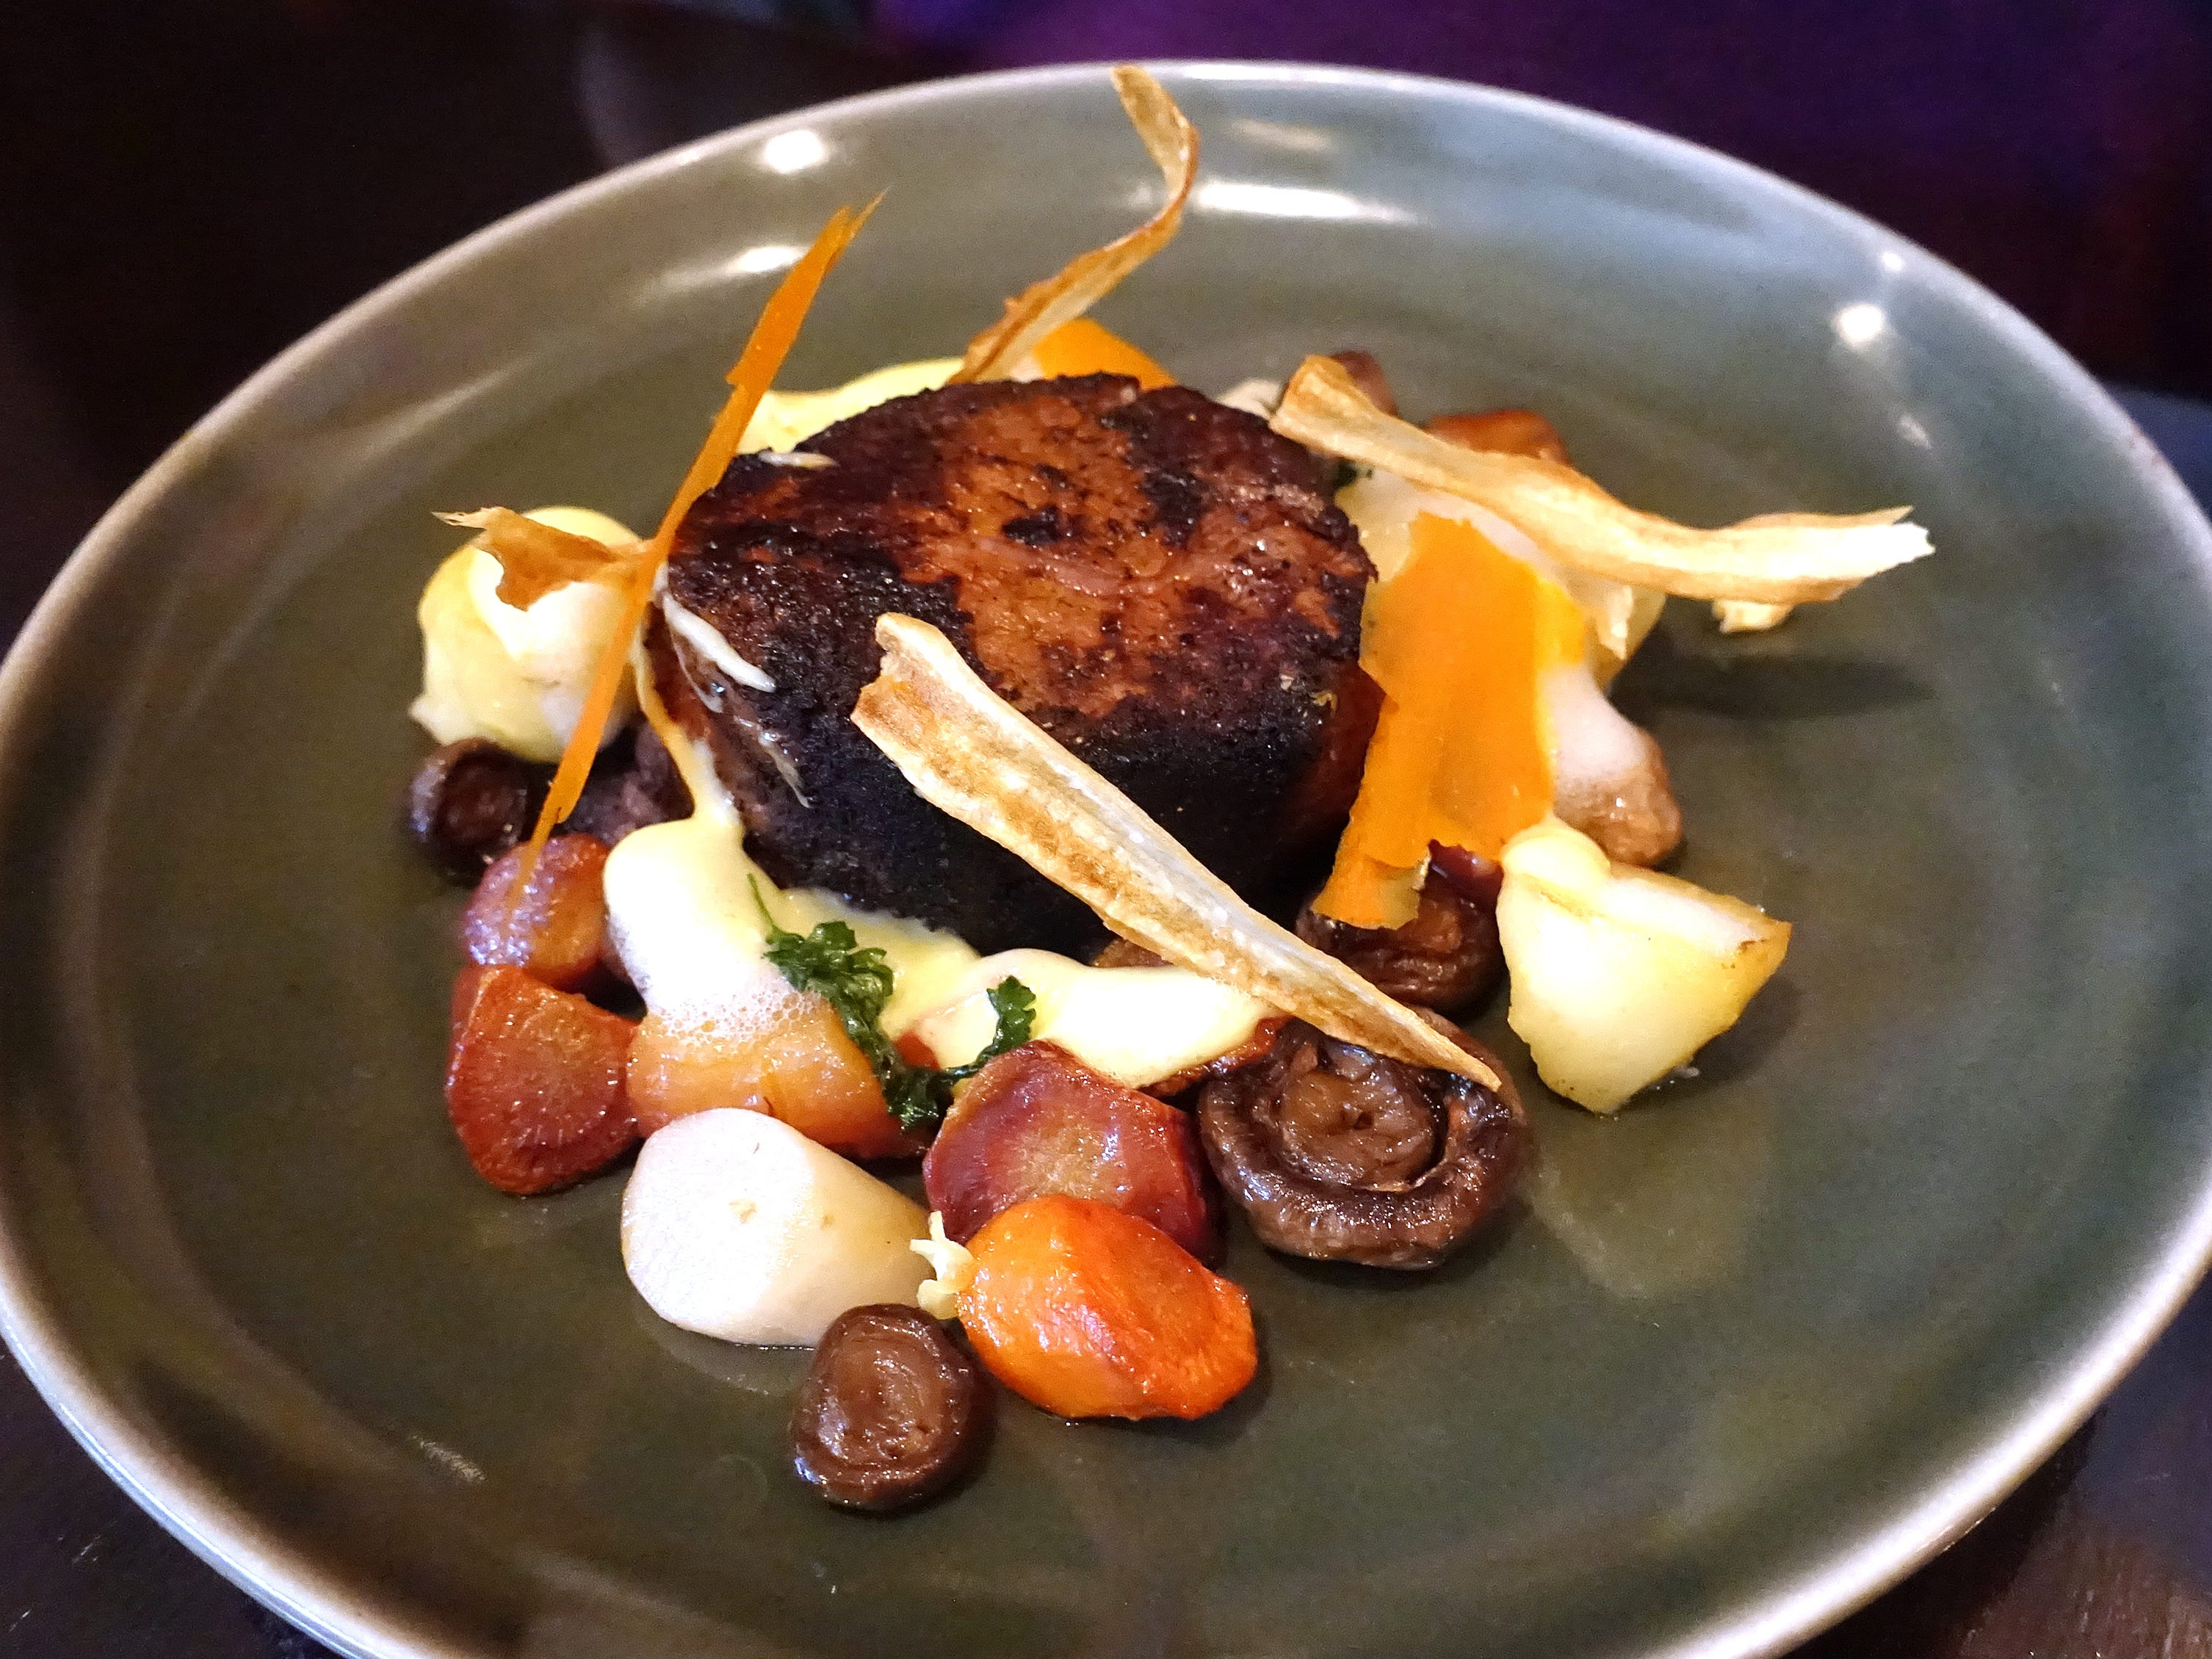 Blackened filet mignon with salsify, carrot, parsnip, button mushrooms and Hollandaise at Confluence in Carefree, AZ.